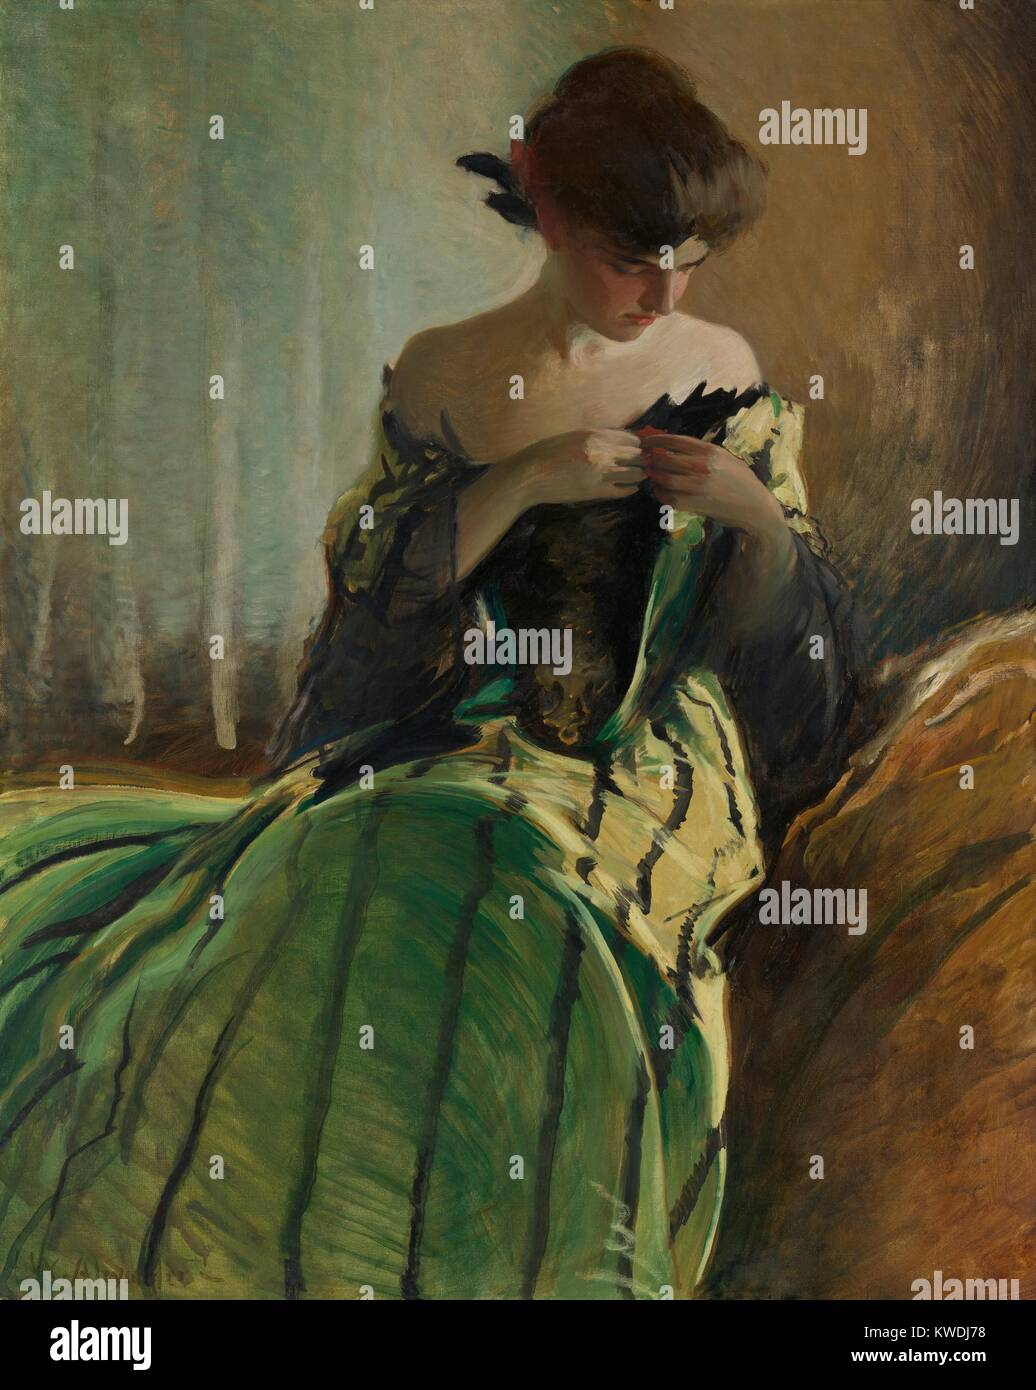 STUDY IN BLACK AND GREEN, by John White Alexander, 1909, American painting, oil on canvas. A young women pins an - Stock Image